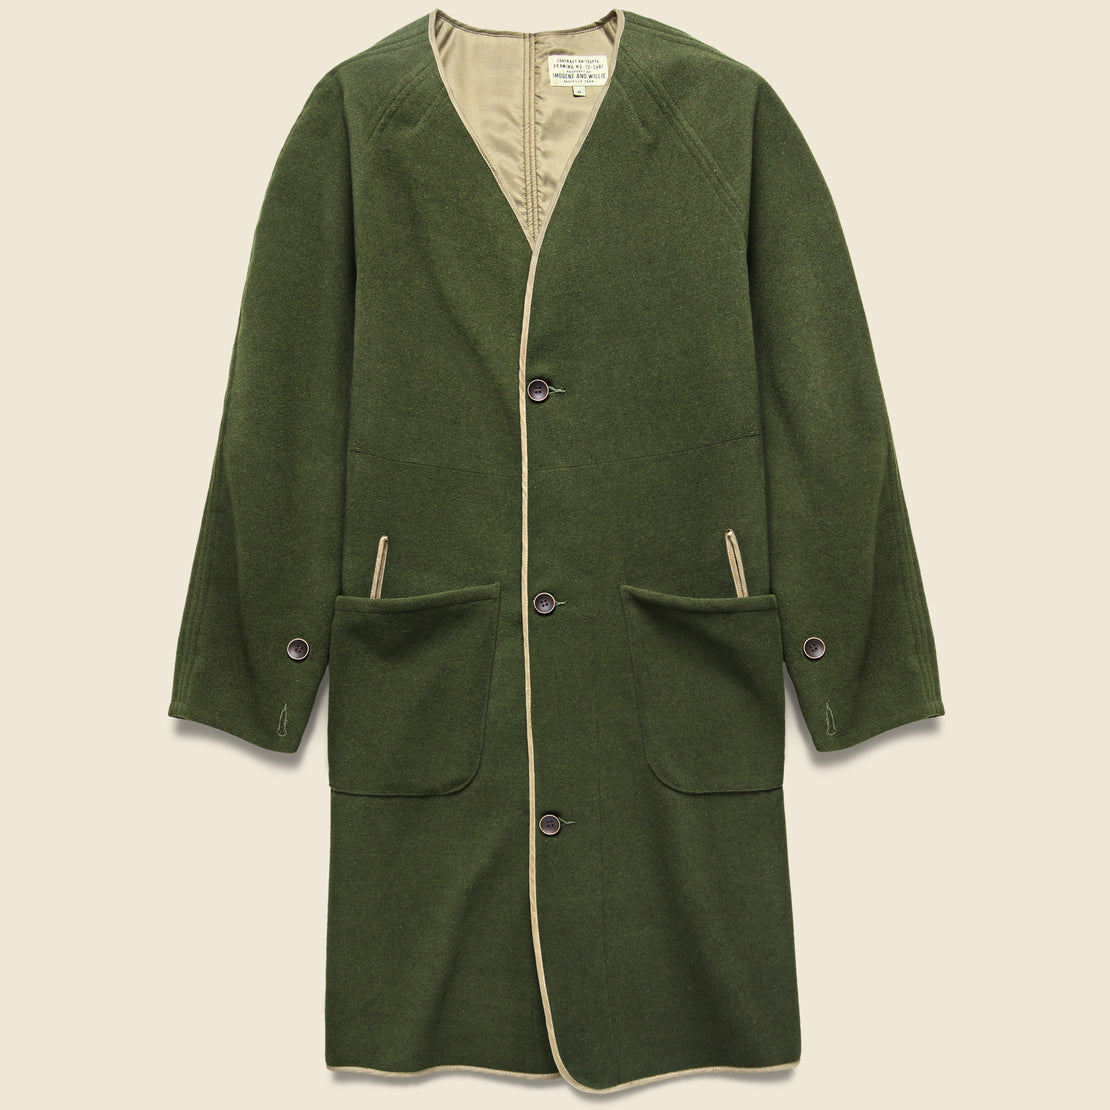 Imogene + Willie Halsey Coat - Olive Drab